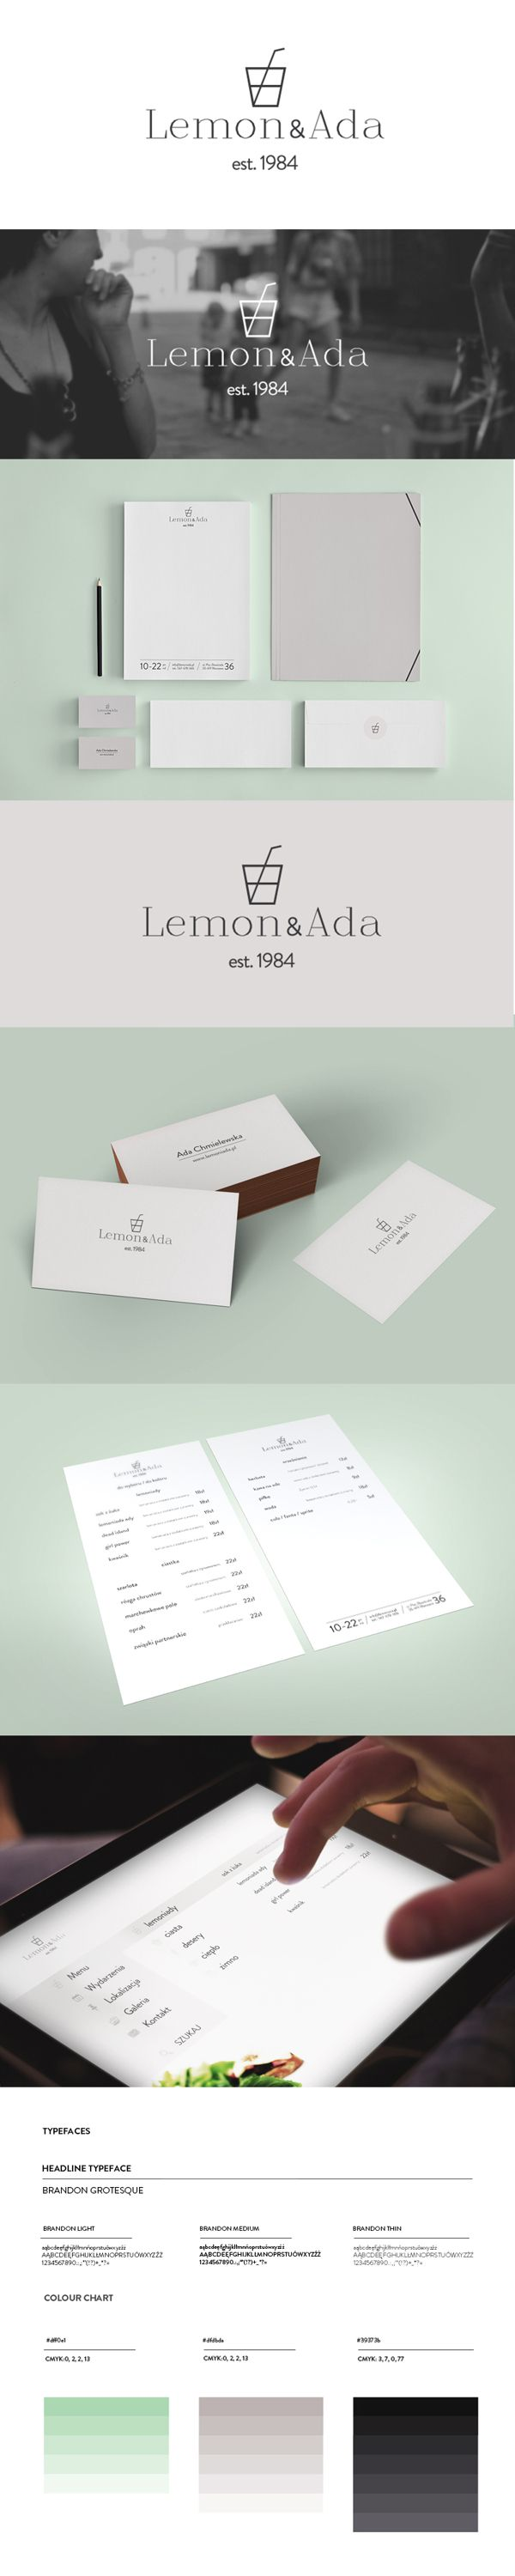 Conceptual logo, branding, visual identity and web design for Lemoniada Bar in Warsaw, Project: Brandnation, Poland